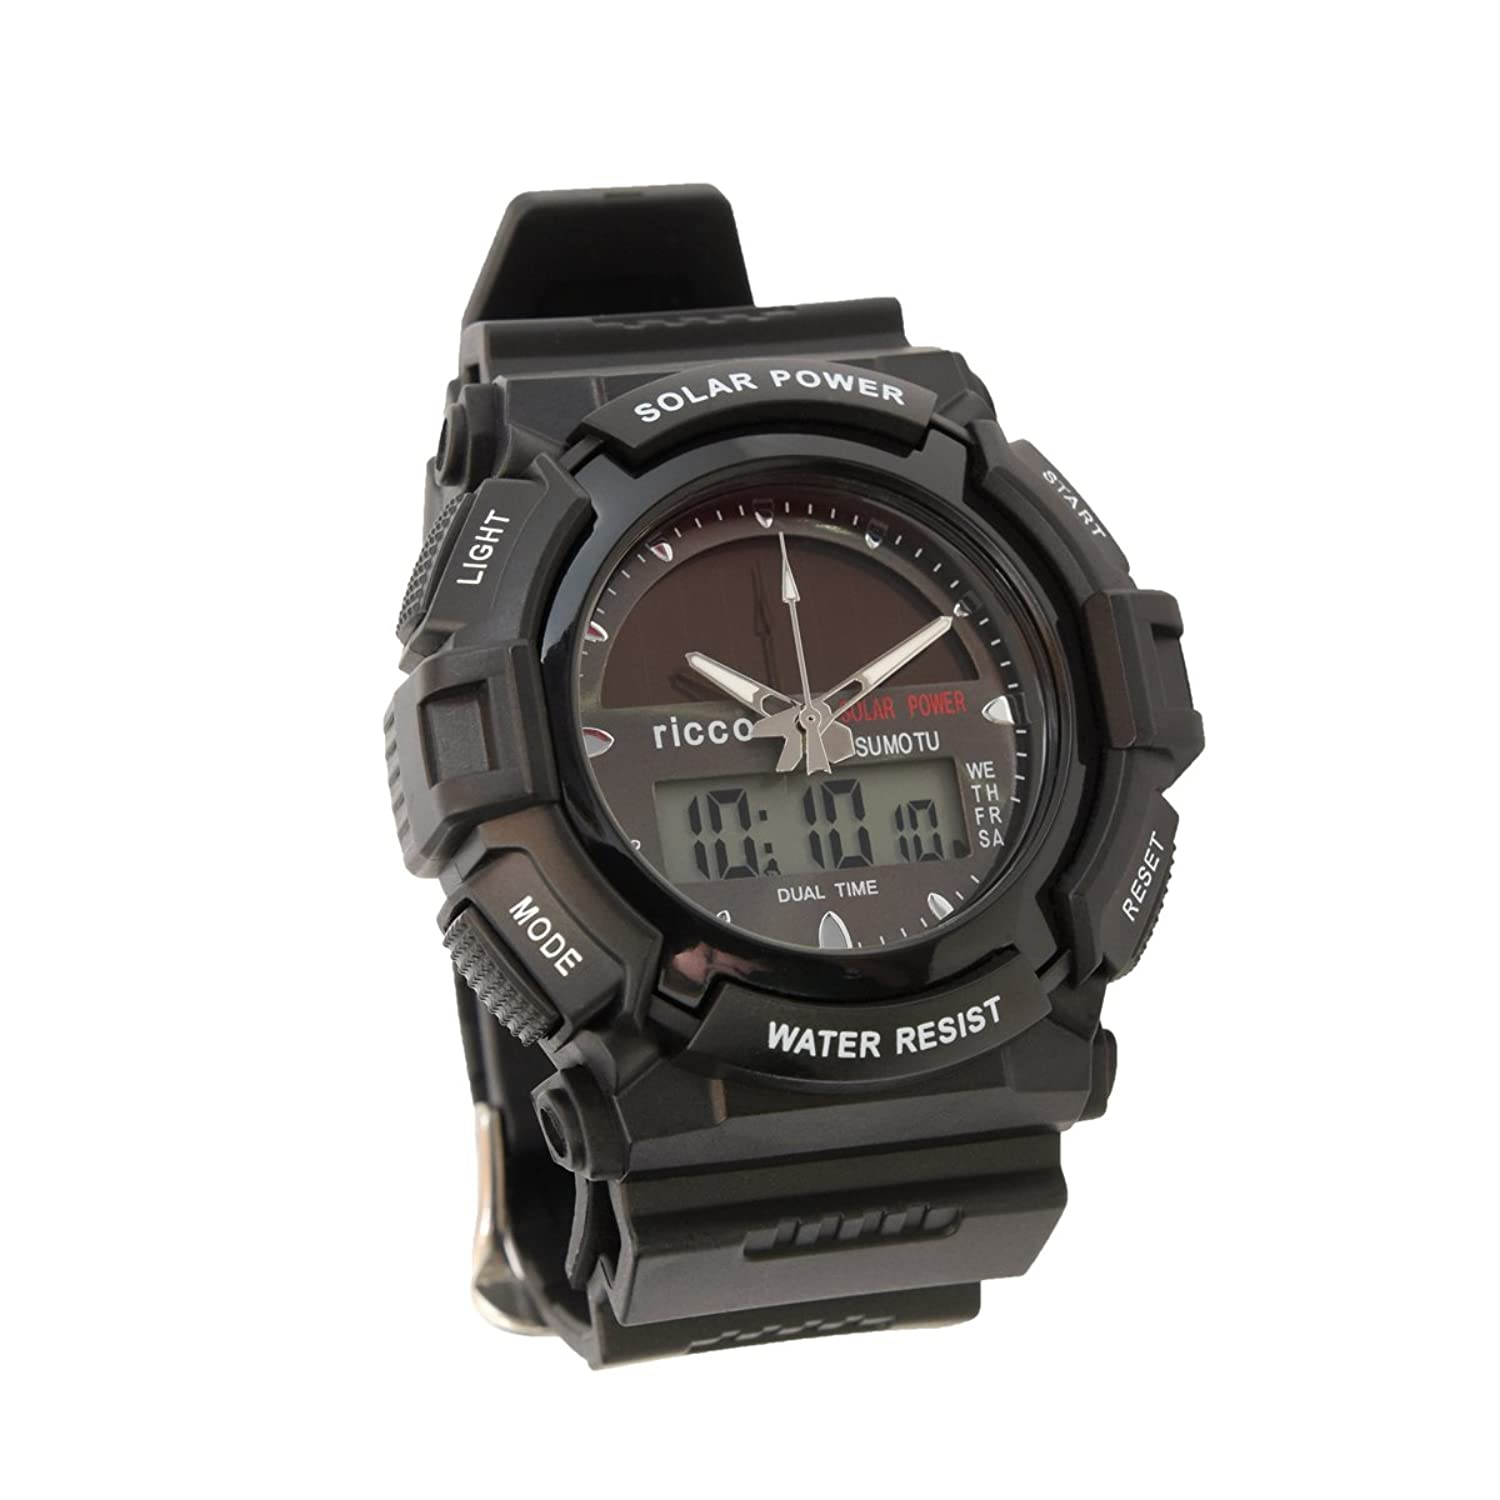 bertucci hypoallergenic loved cases common power sub from are lightweight dollars made solar gear watches solid a best and such properties site its for patrol on under titanium not durable